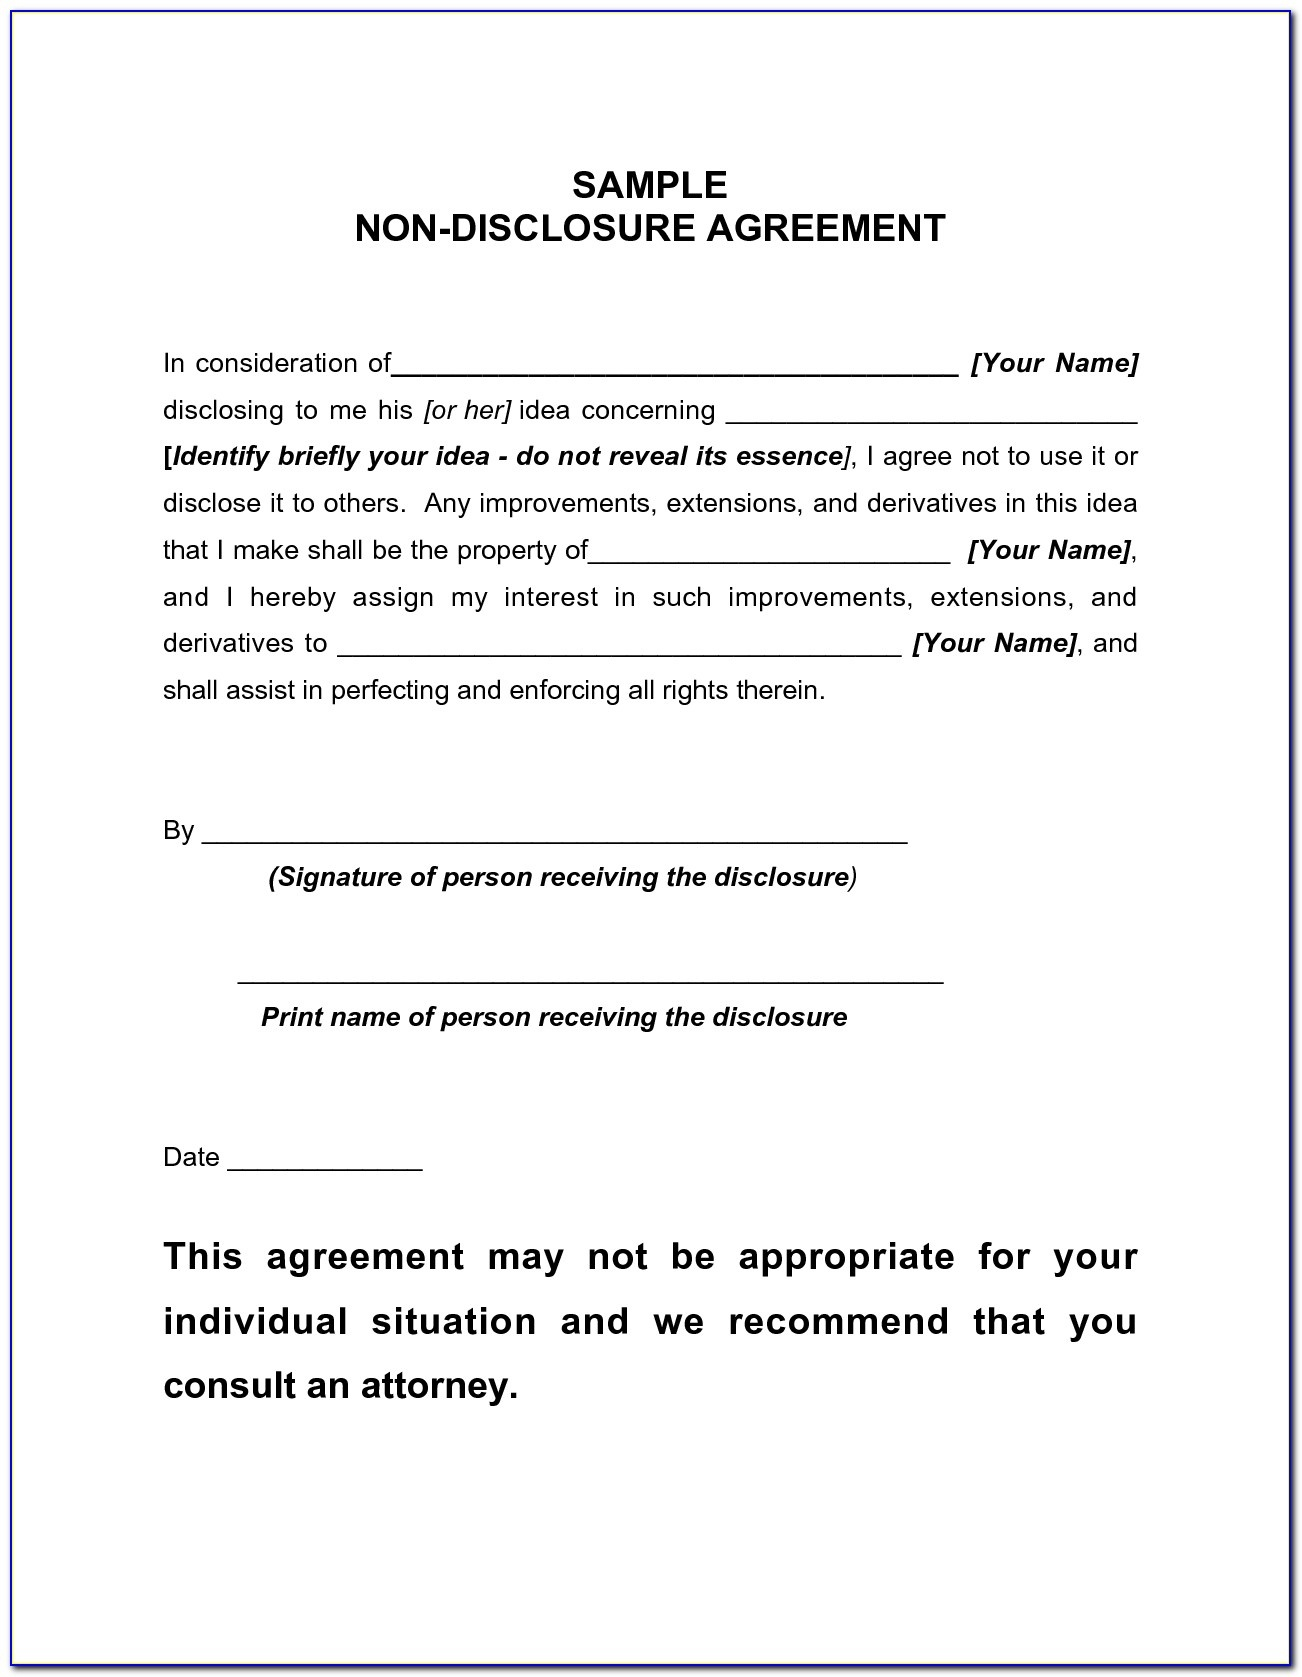 Free Non Disclosure Agreement Form Pdf - Form : Resume Examples - Free Printable Non Disclosure Agreement Form